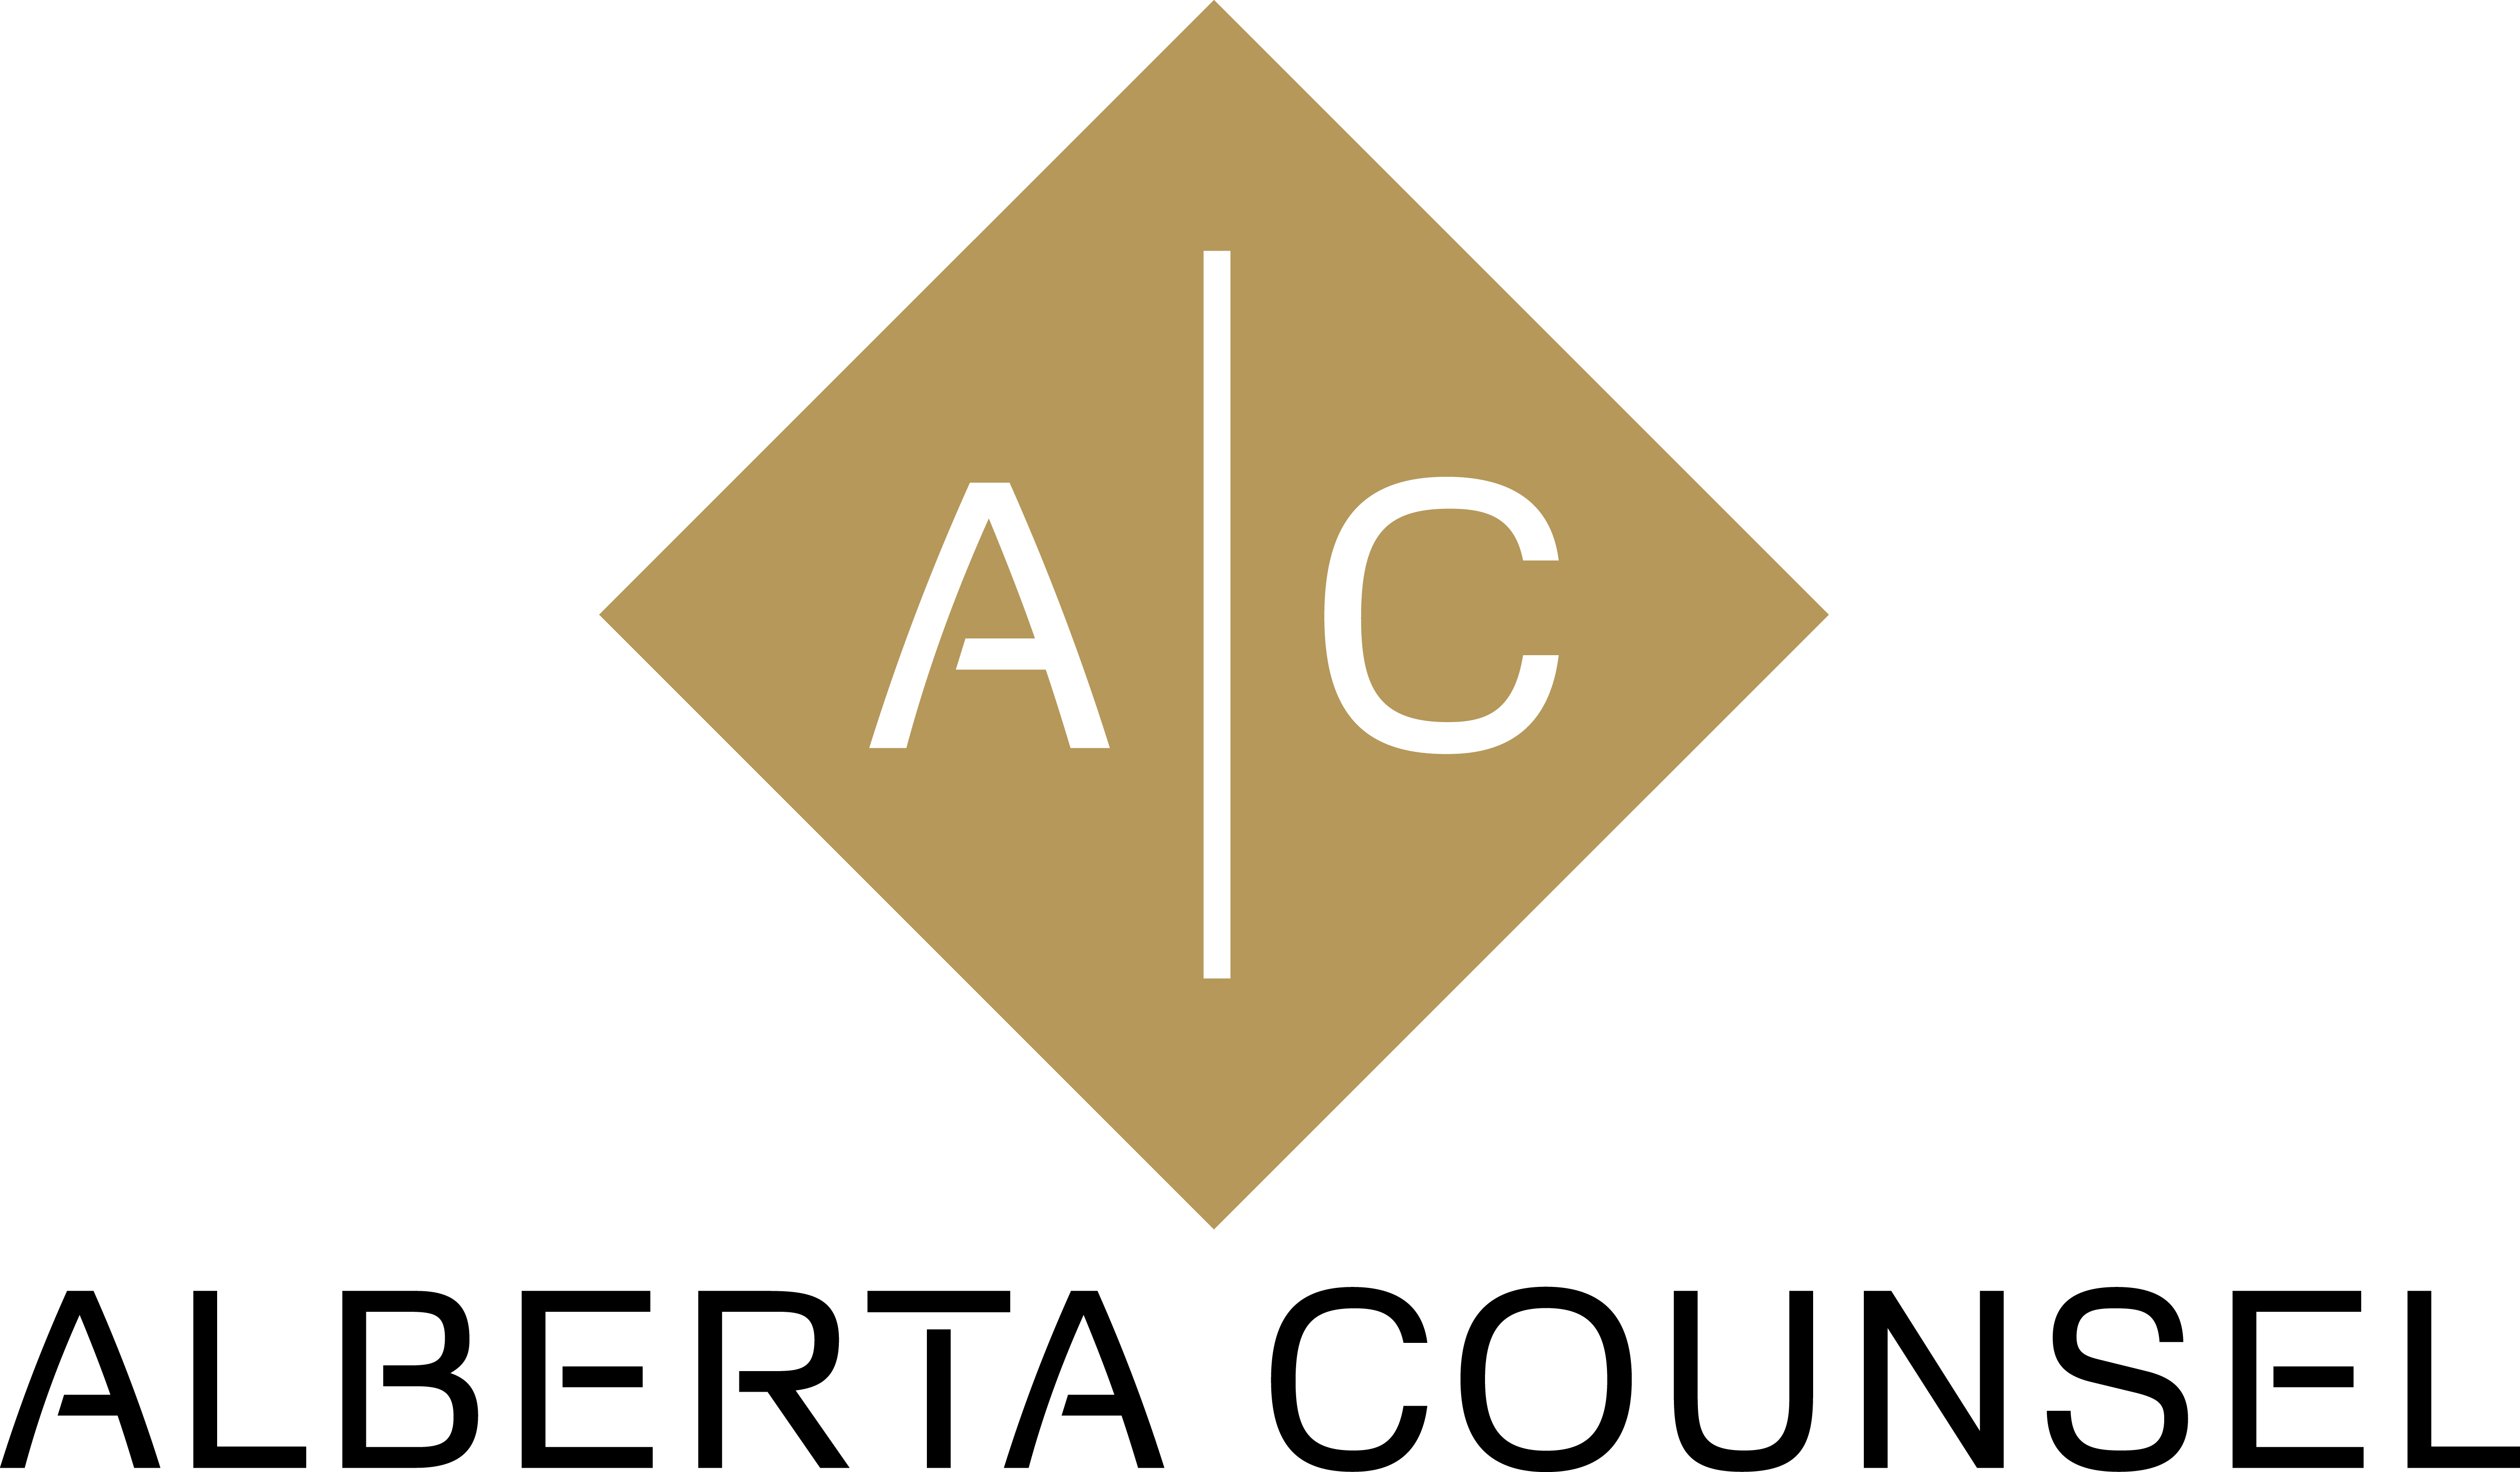 Alberta Counsel - Legal and Lobby Professionals